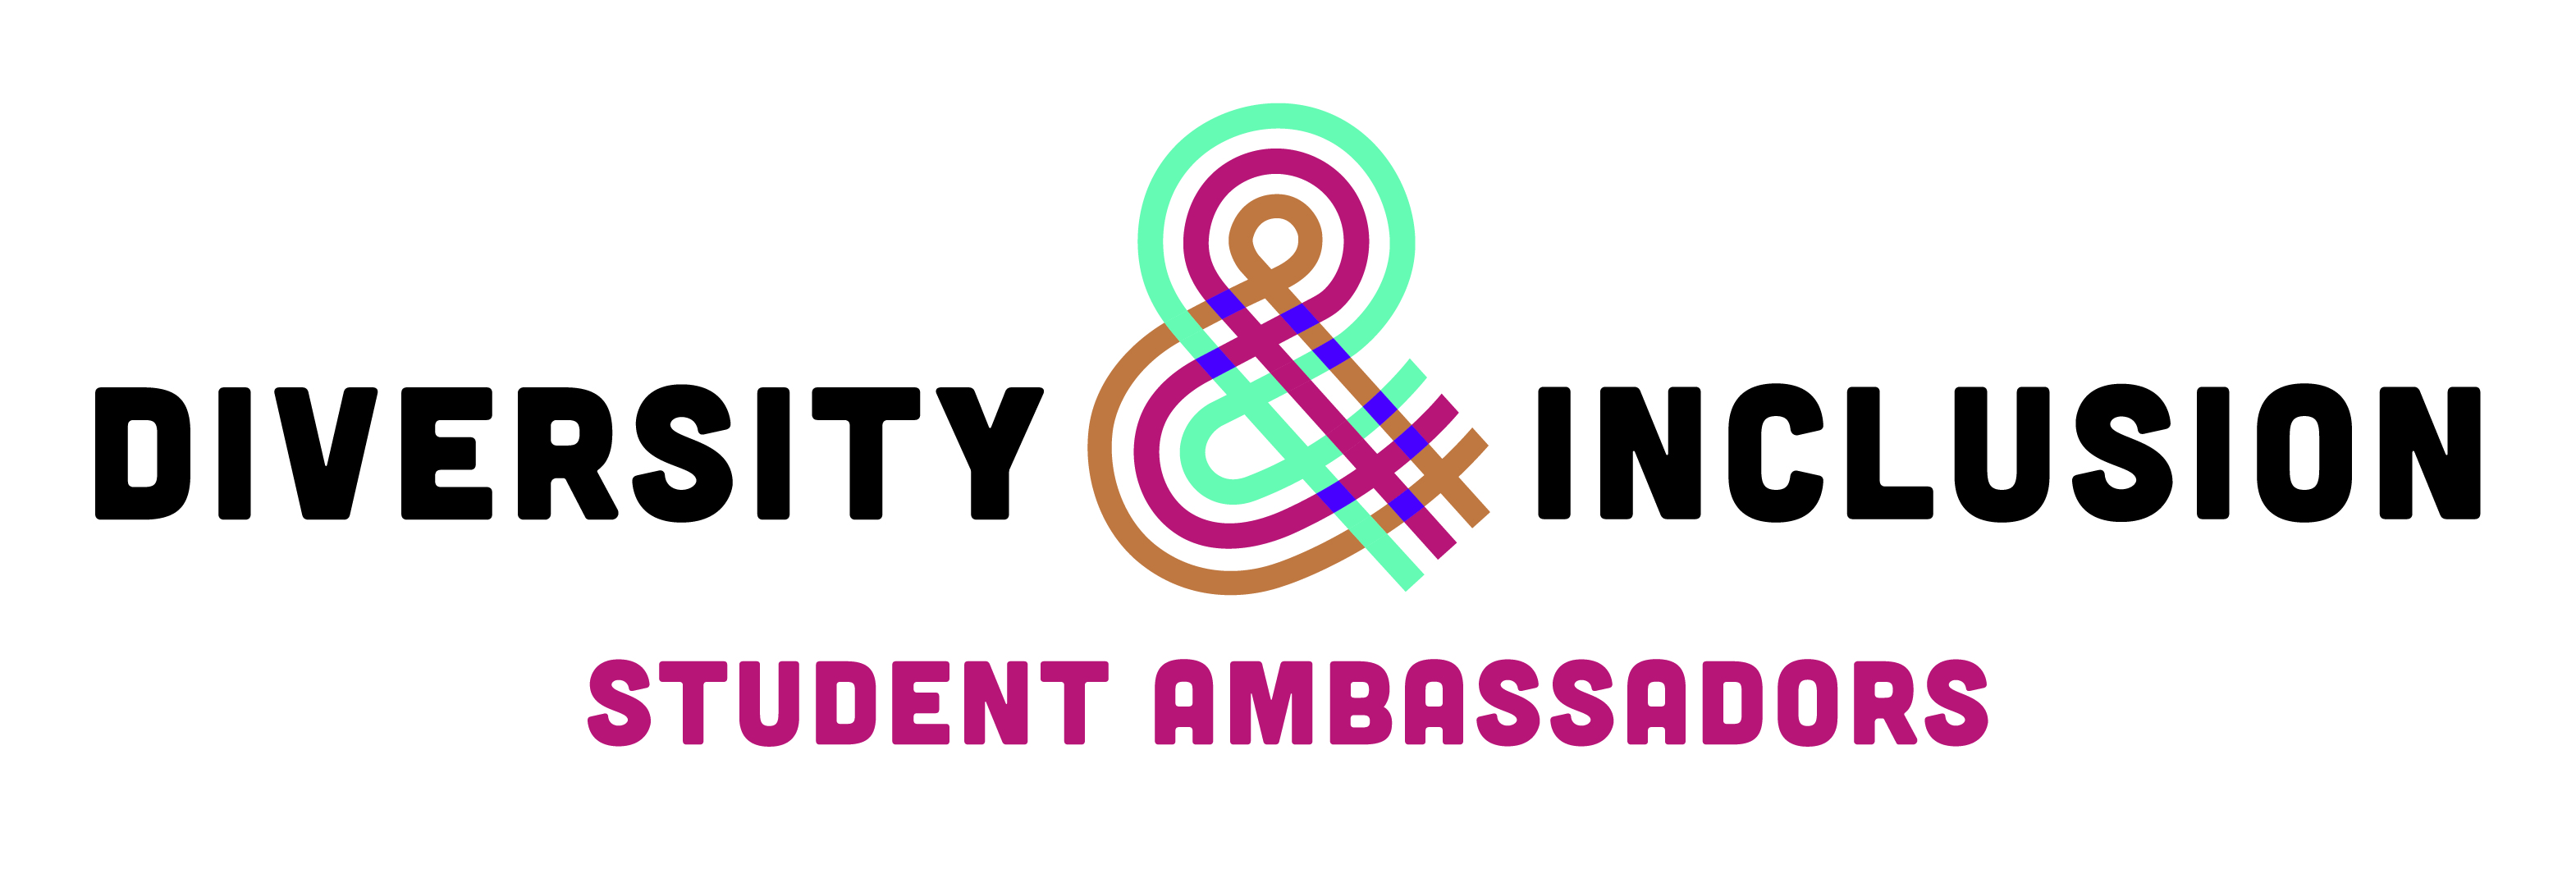 Diversity and Inclusion Student Ambassador | The University